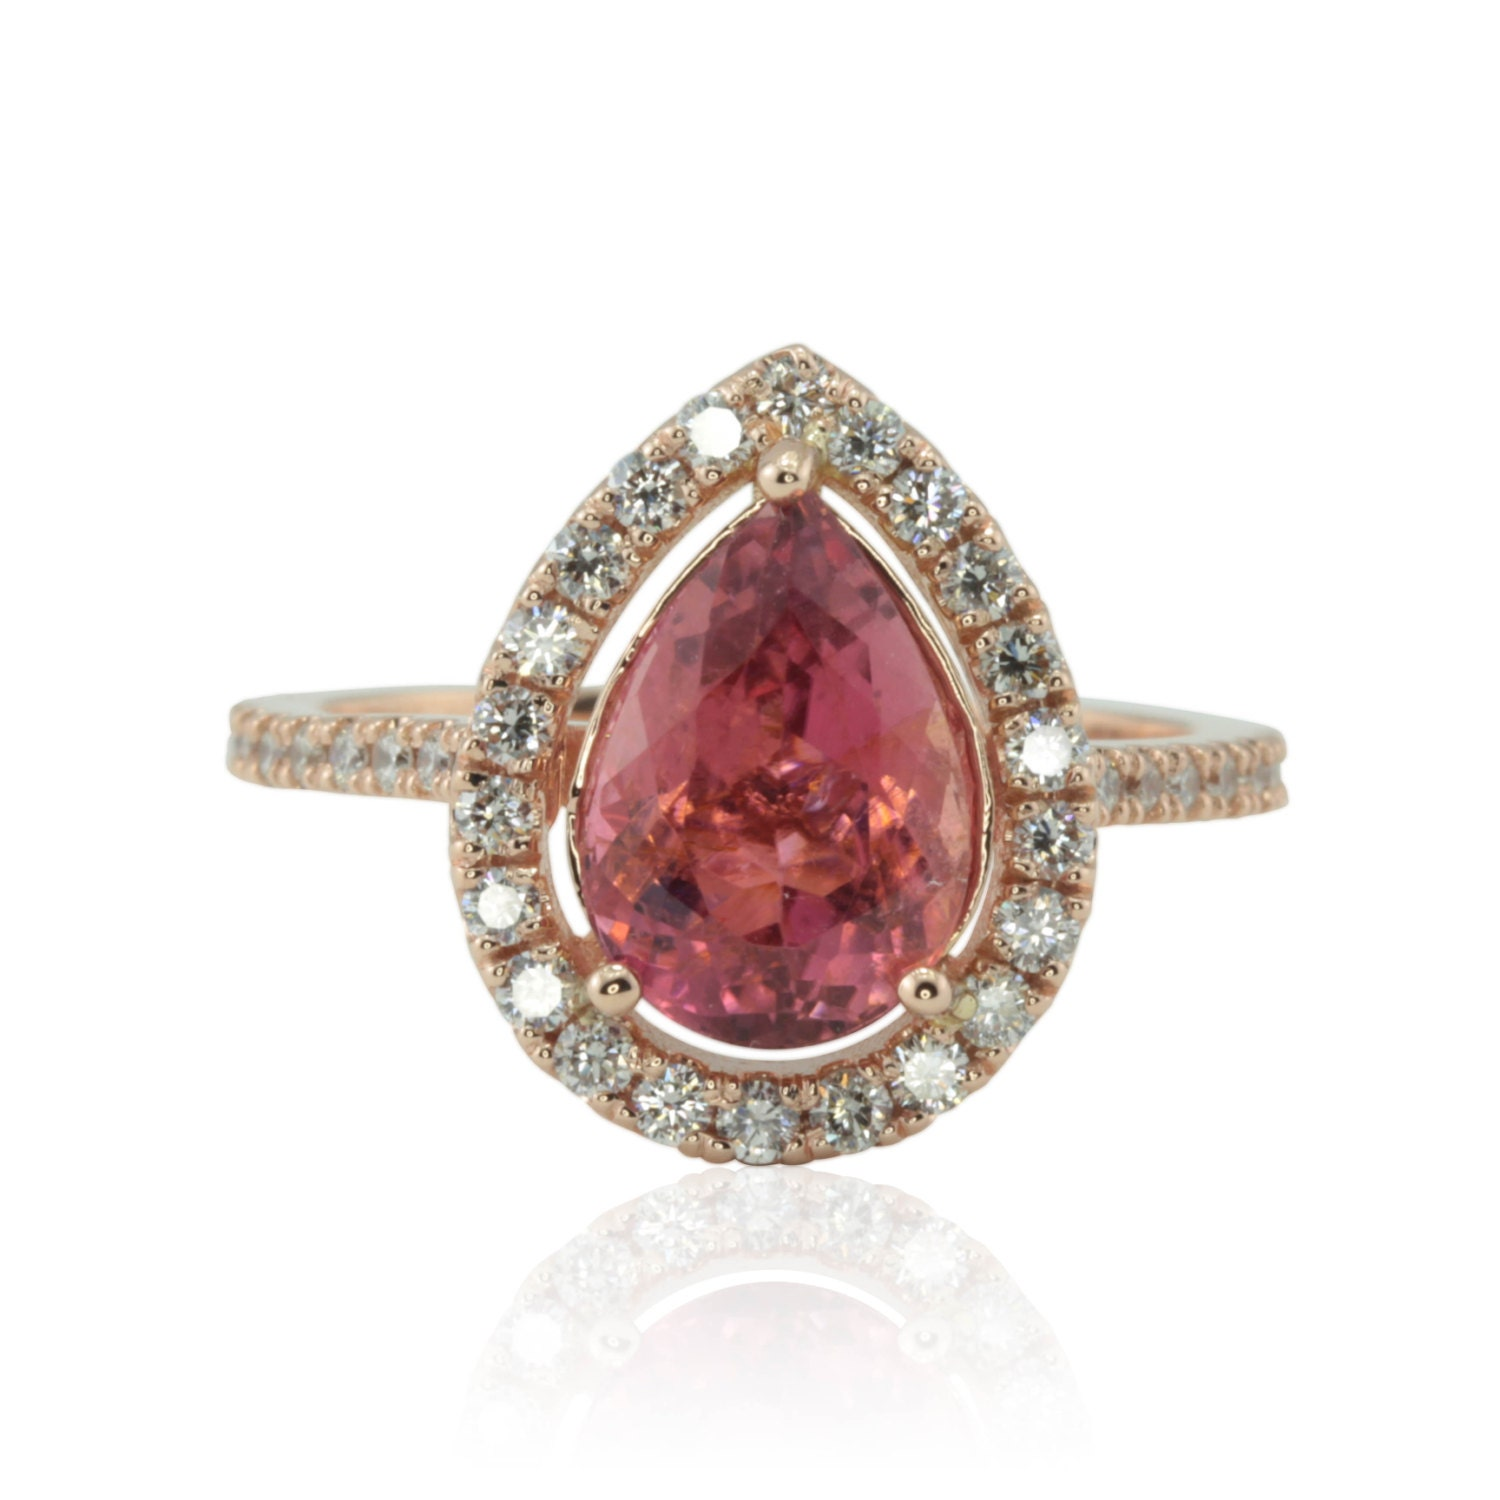 Rose Gold Engagement Ring with Pear cut Pink Tourmaline and